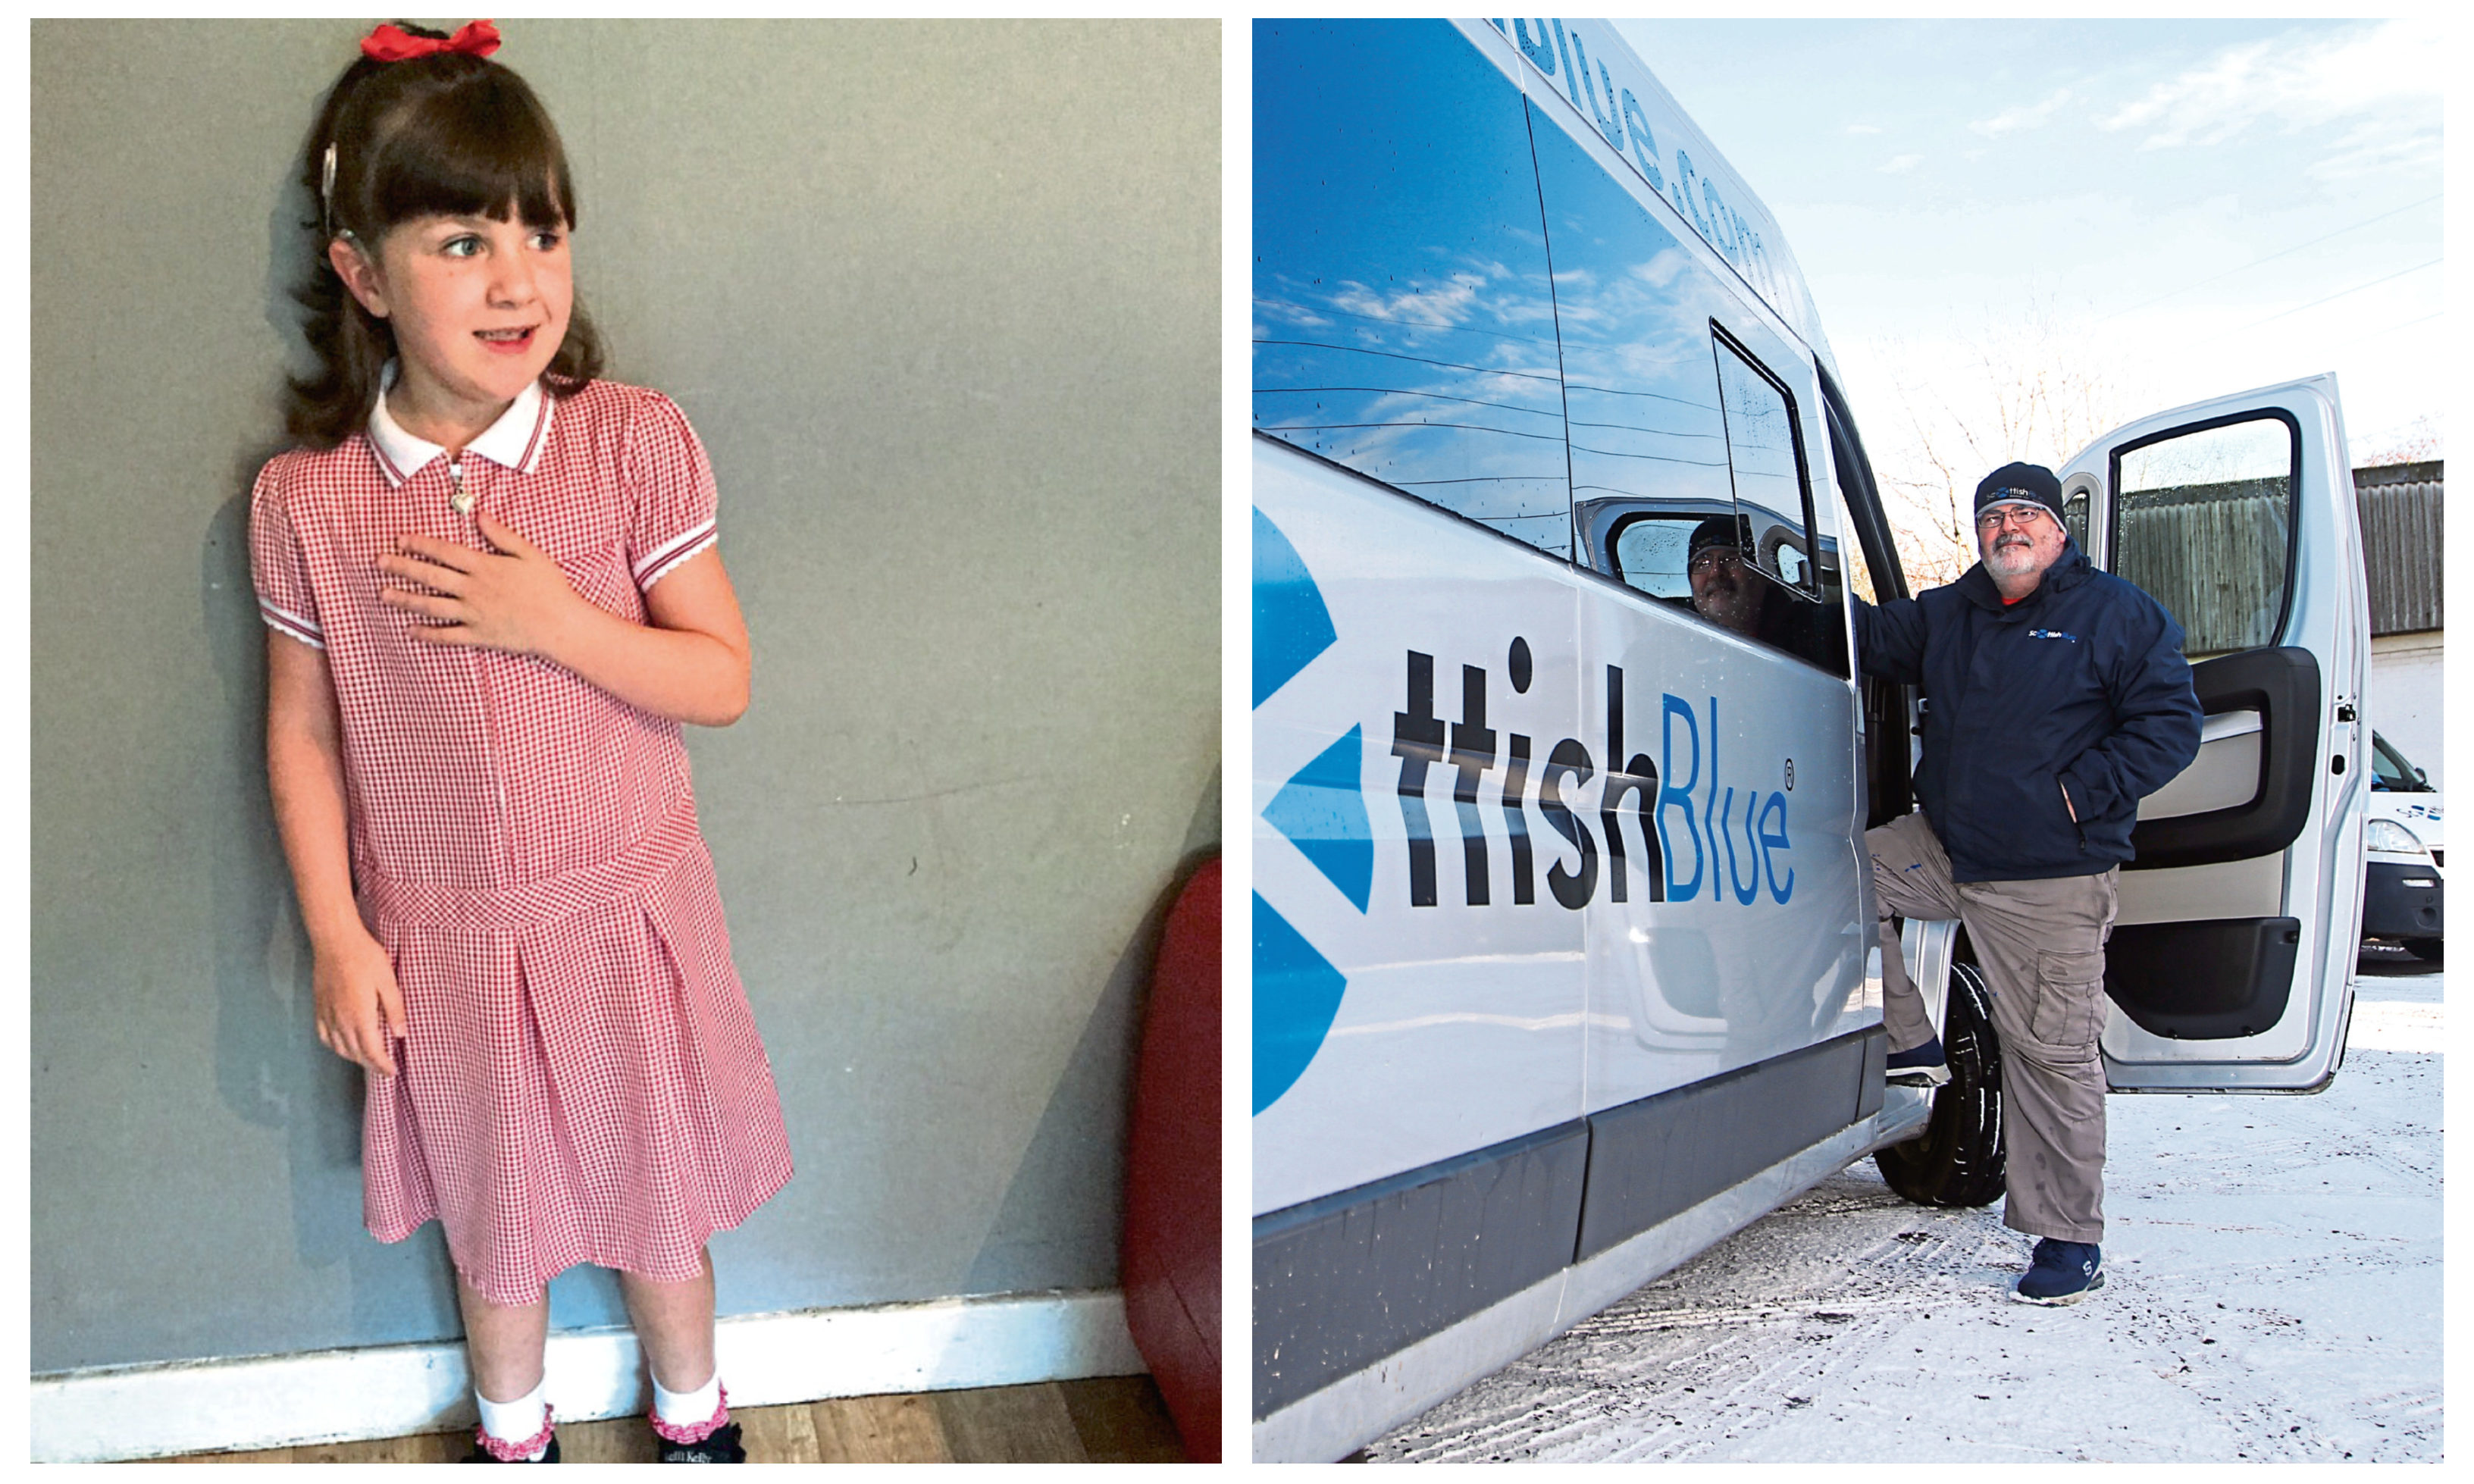 Leia Ingram, and George Scullion, of the Scottish Blue bus firm.